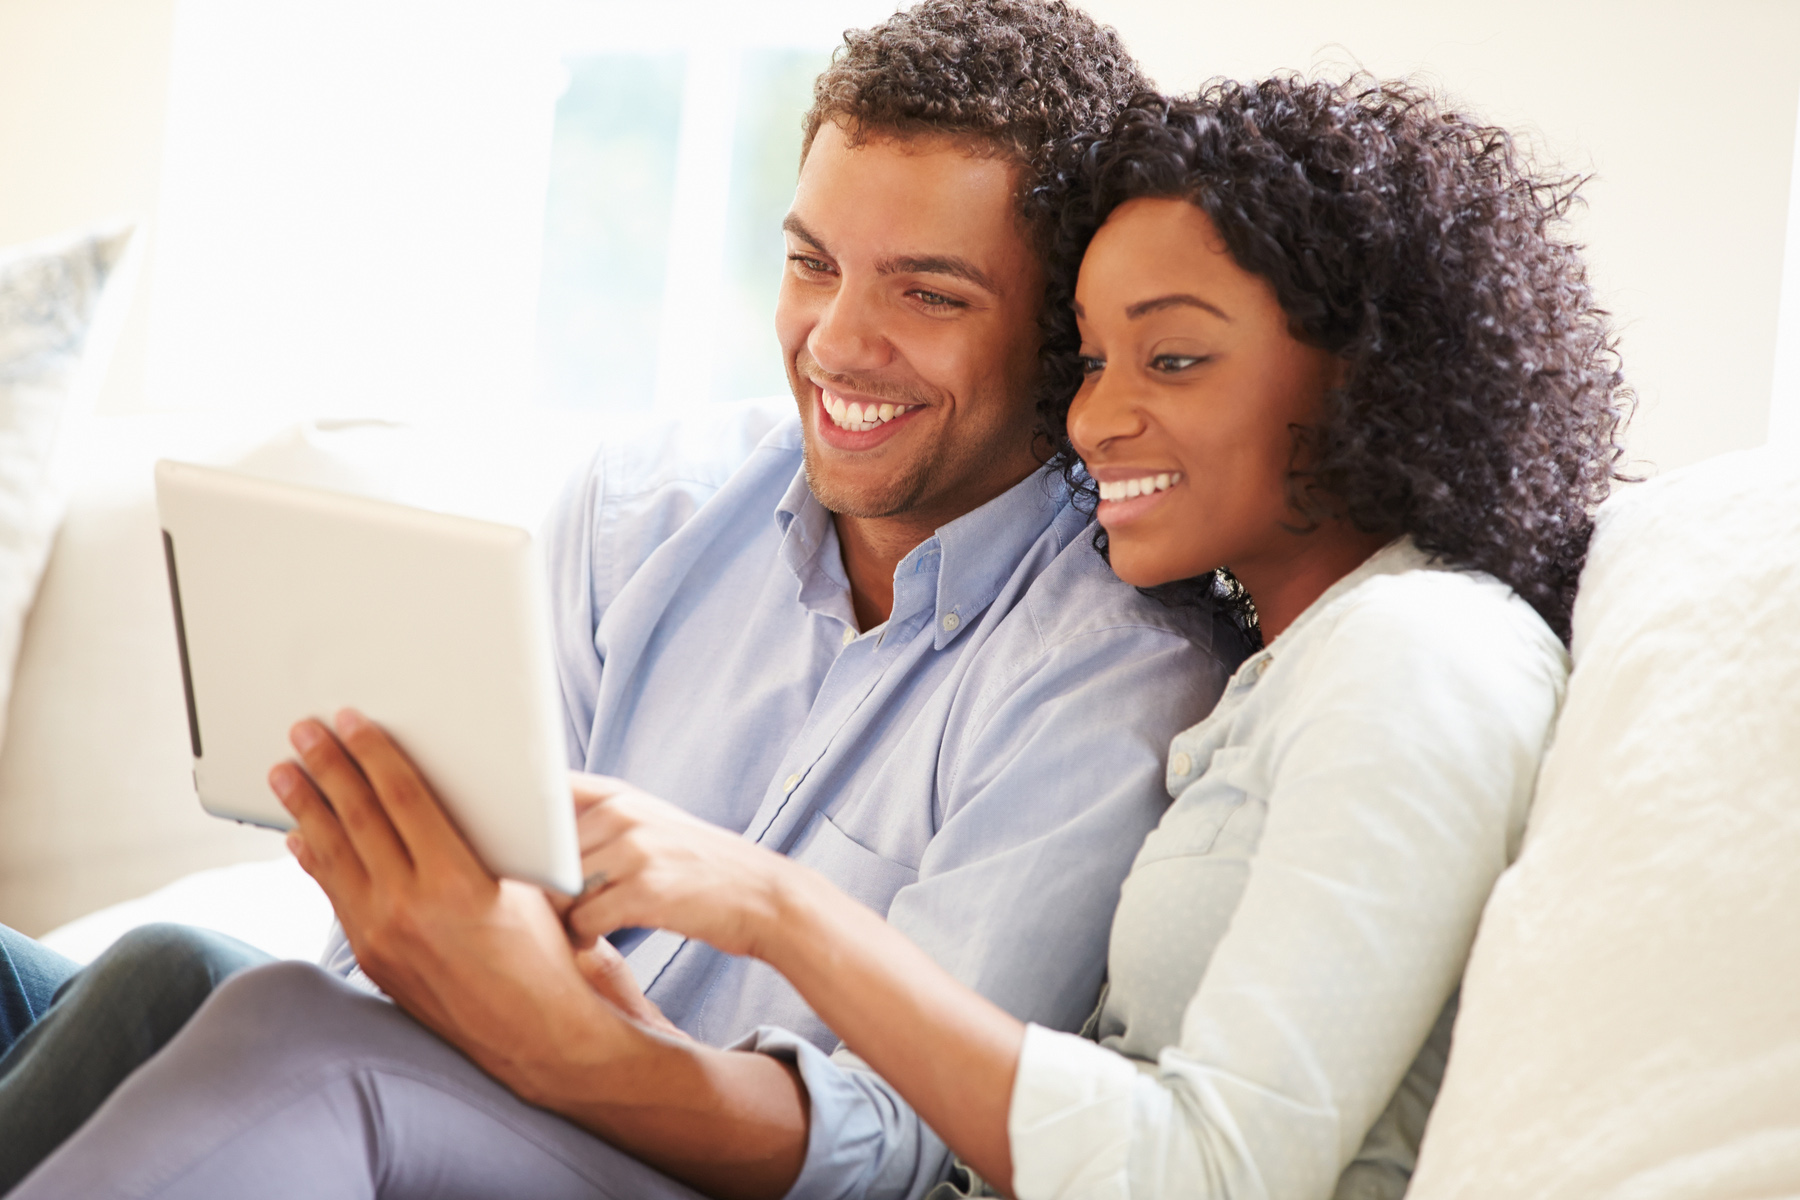 Couple reading a tablet together